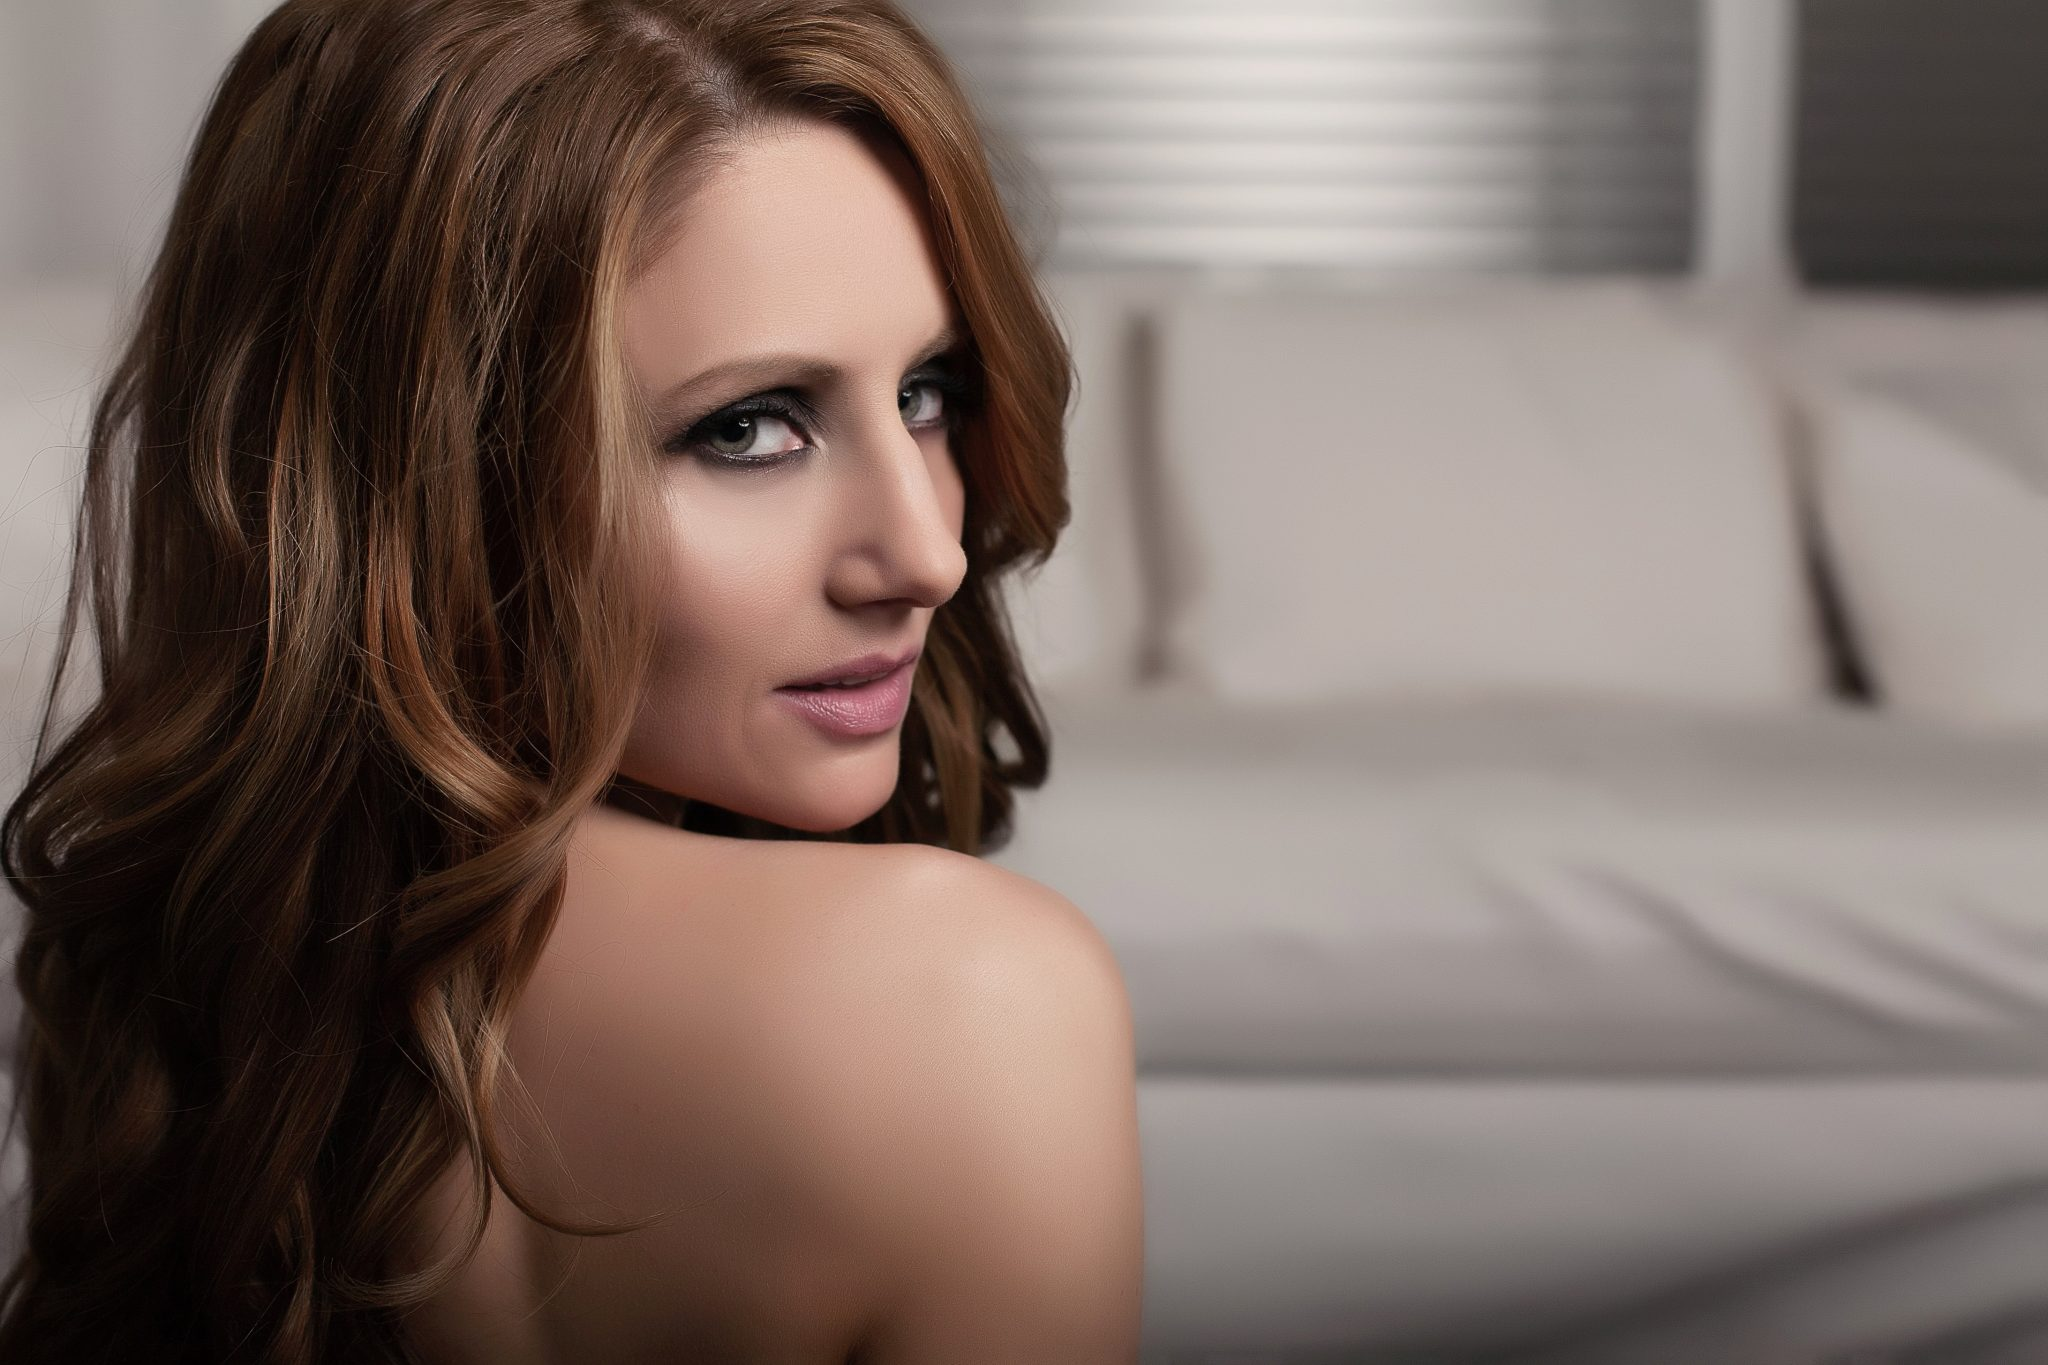 Just a glance is all you need for boudoir photos. No clothing required.